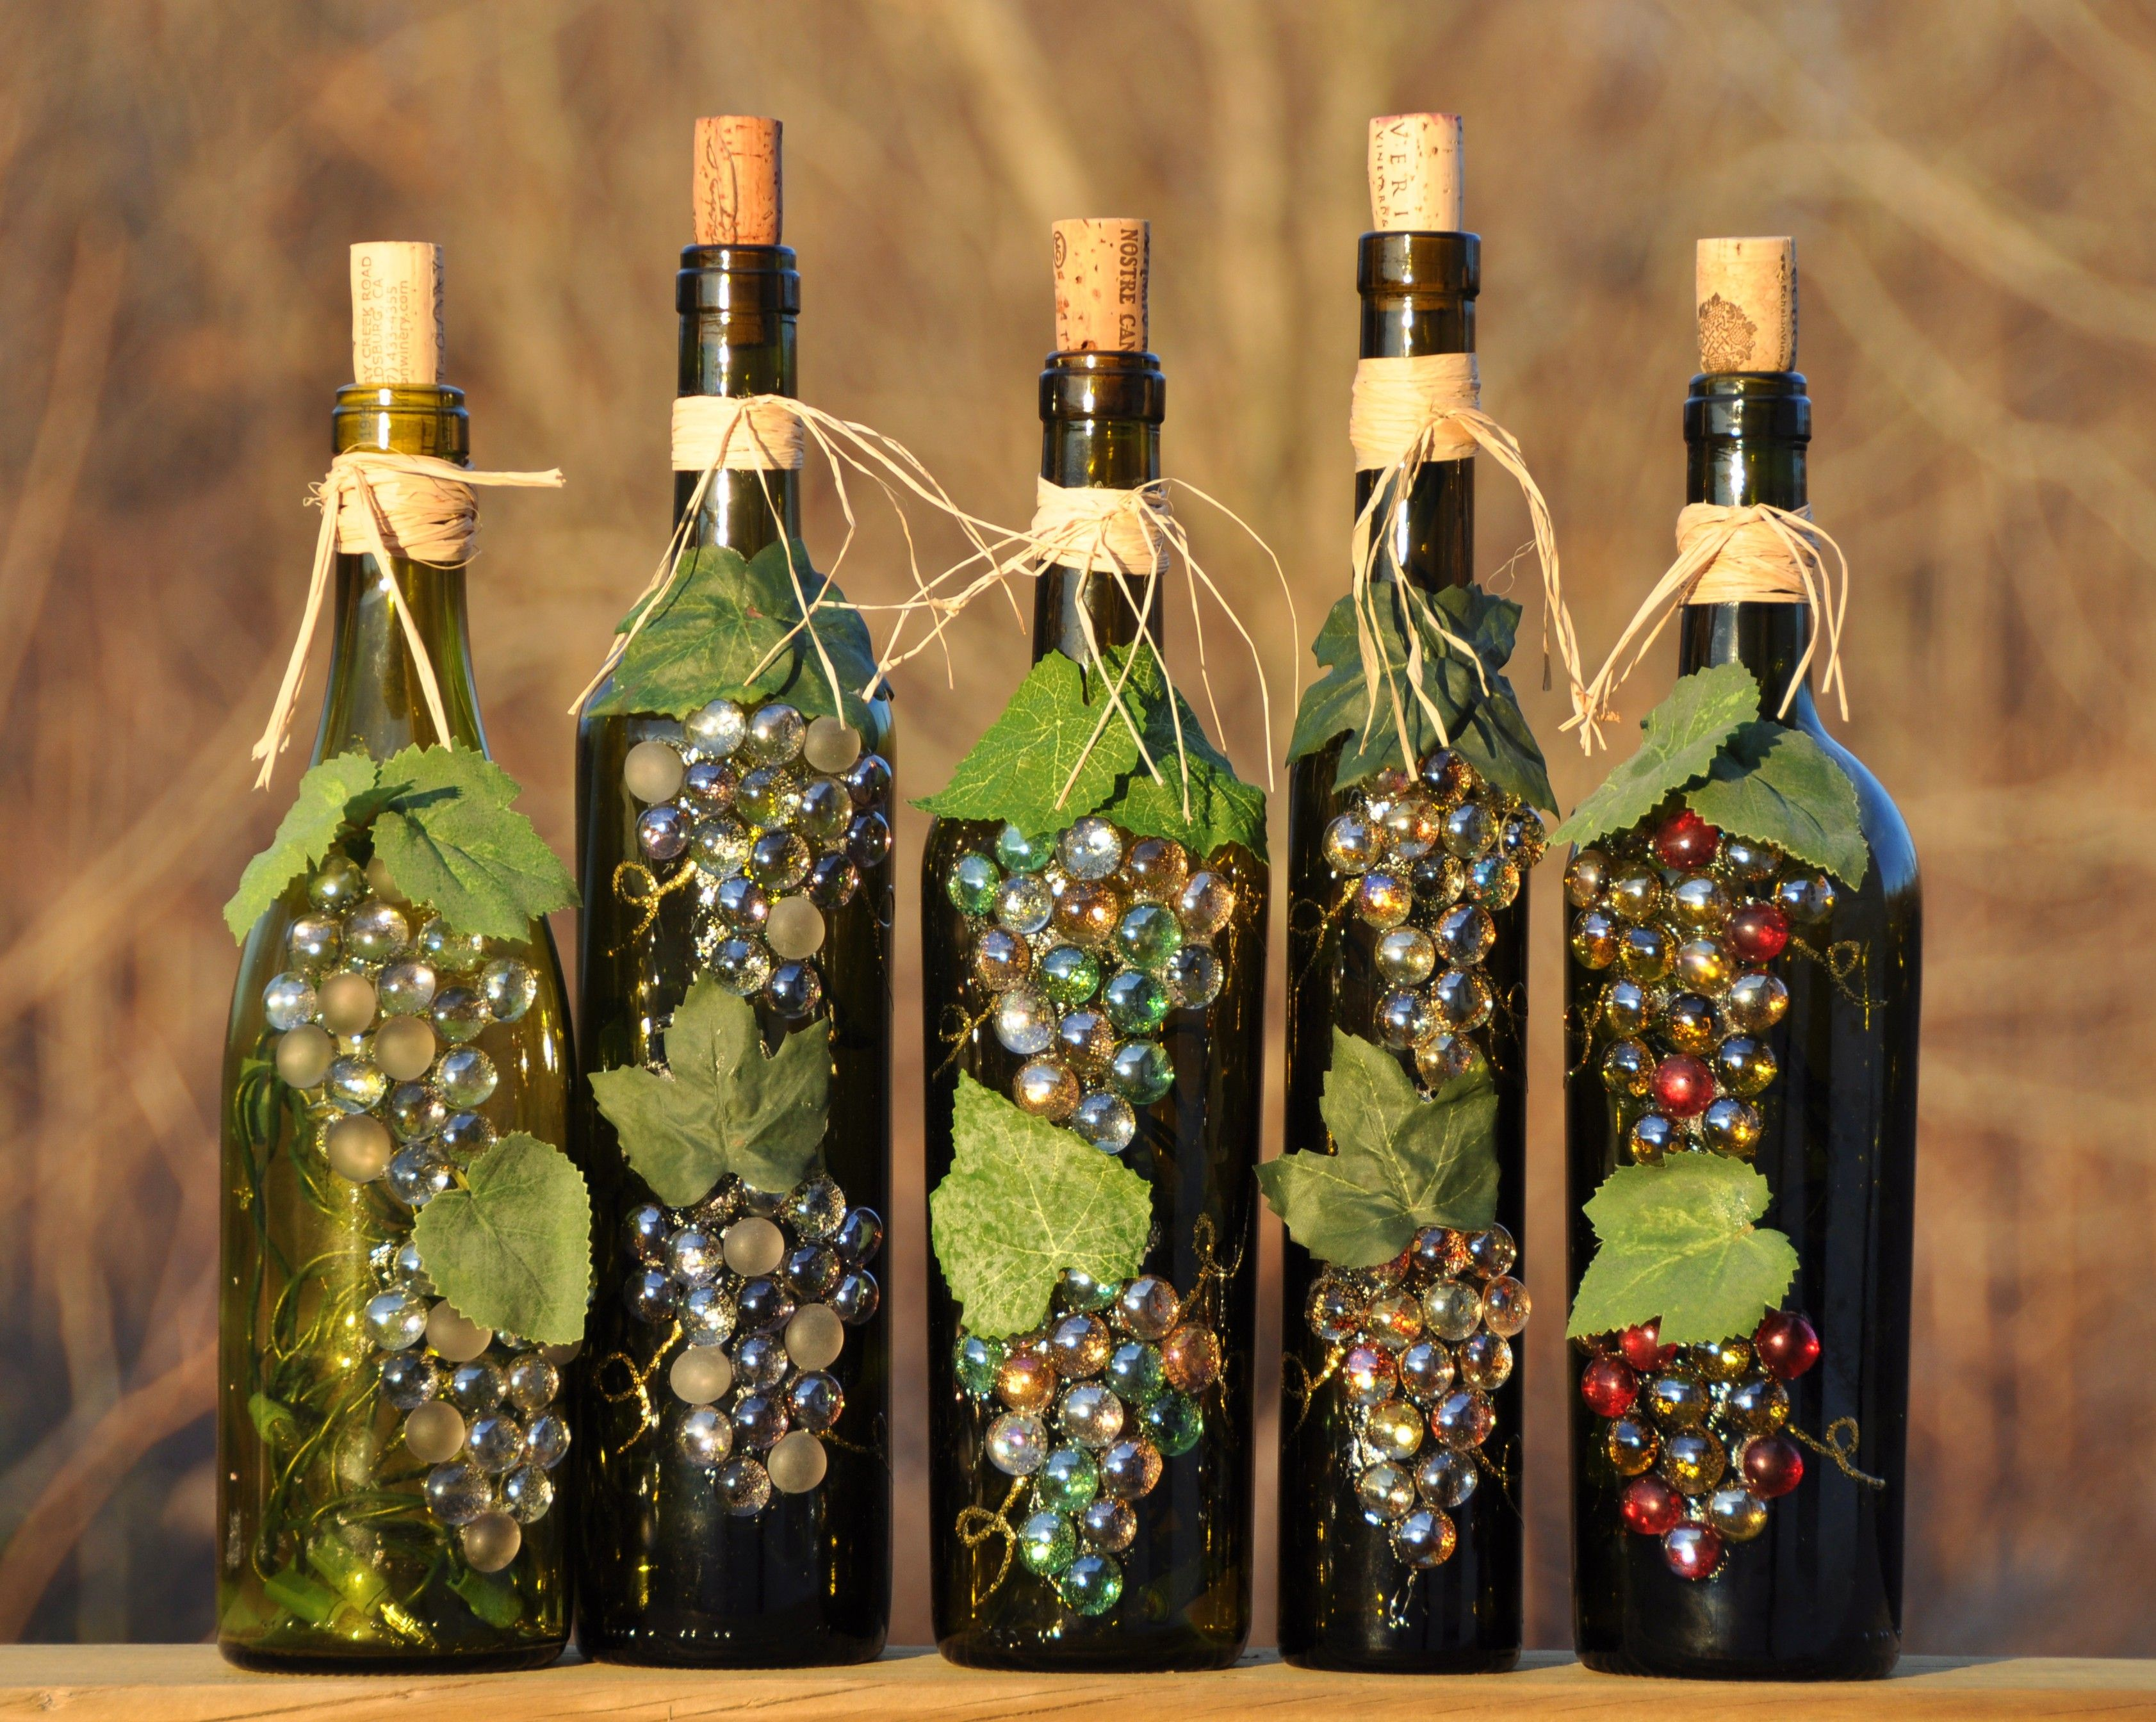 What to do with empty wine bottles - Wine Bottle Crafts Bottle De Lites Home